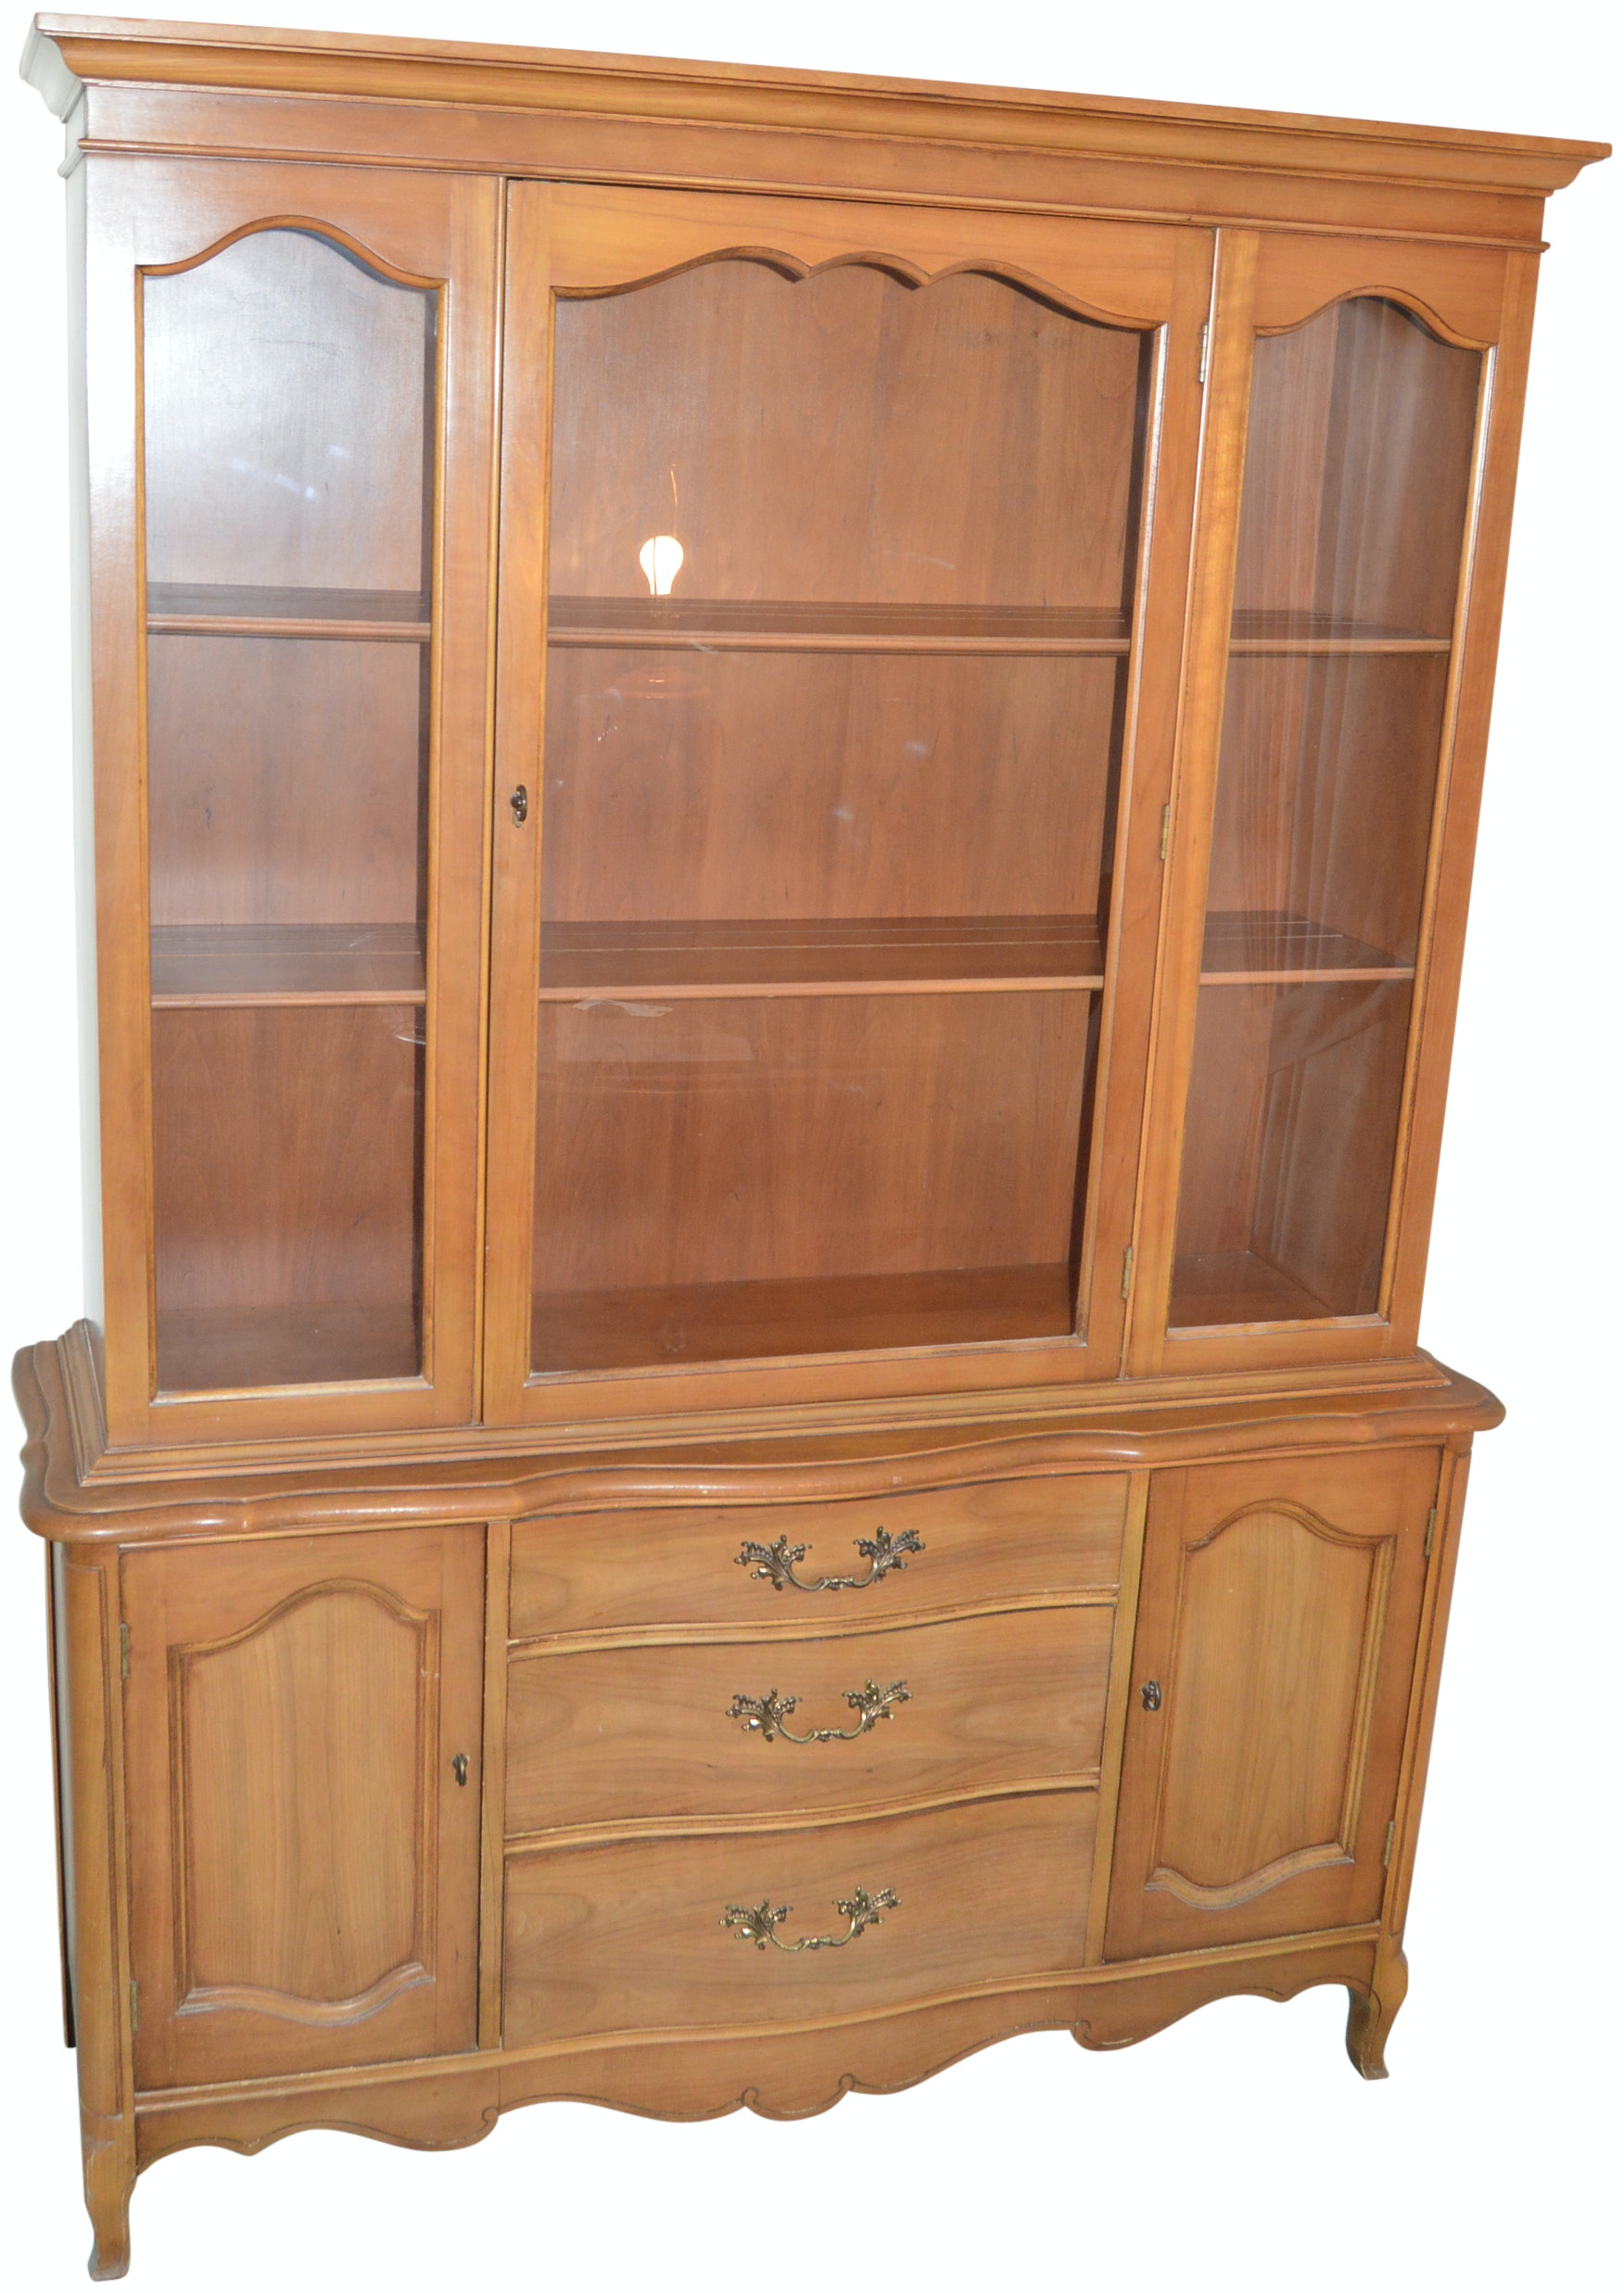 Vintage One Piece French Provincial Style China Cabinet ...